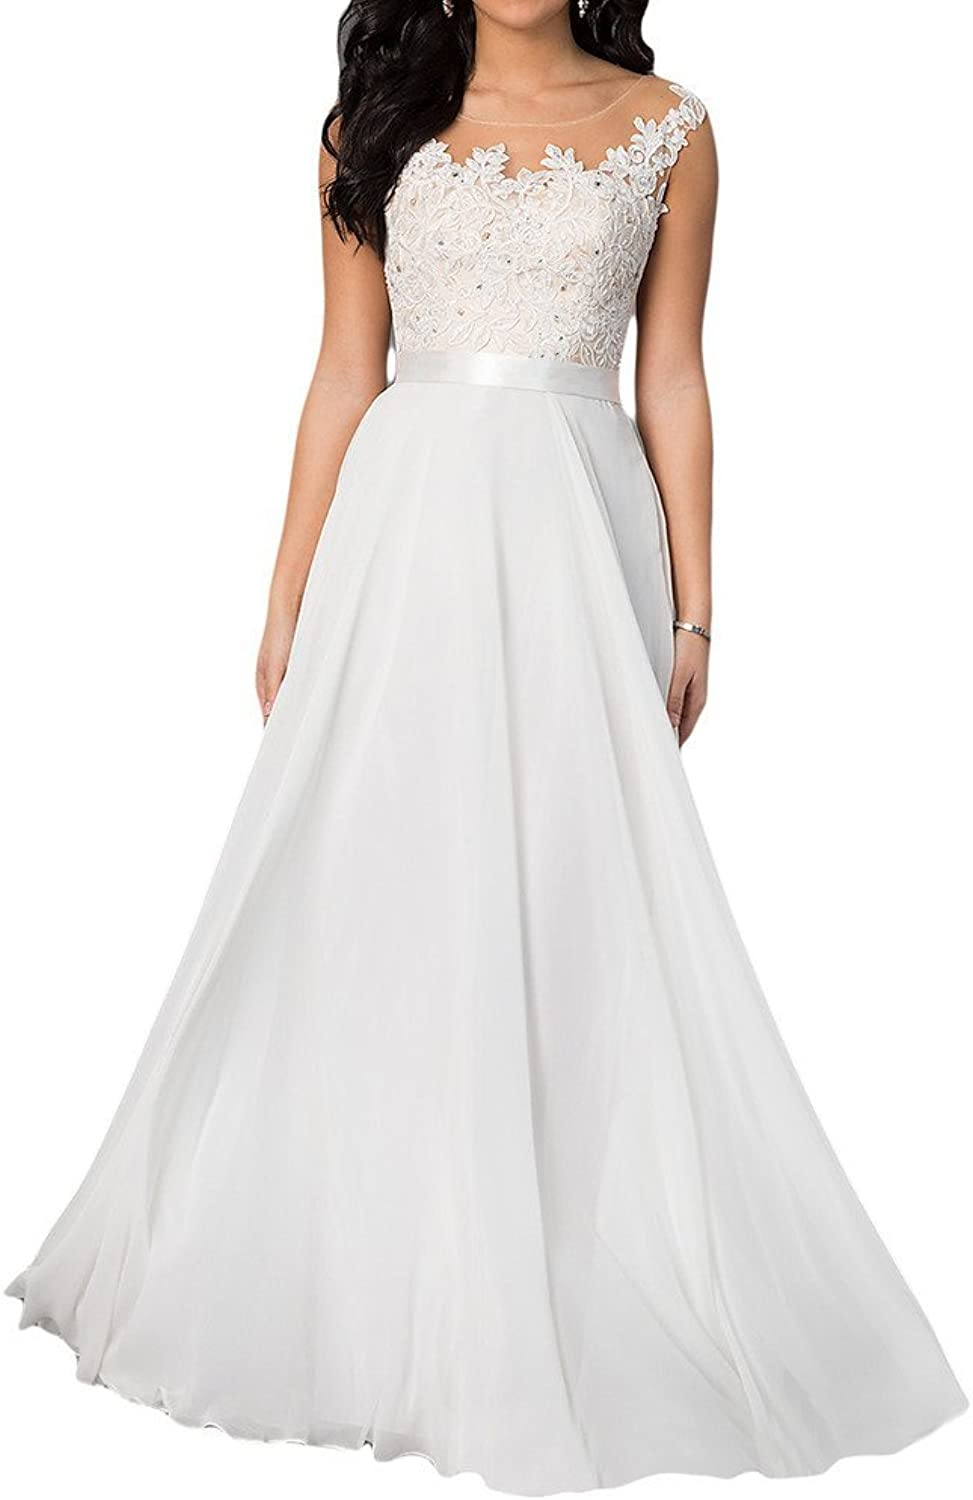 Angel Bride White Appliqued Wedding Dress Floor Length Prom Prom Gown Dress